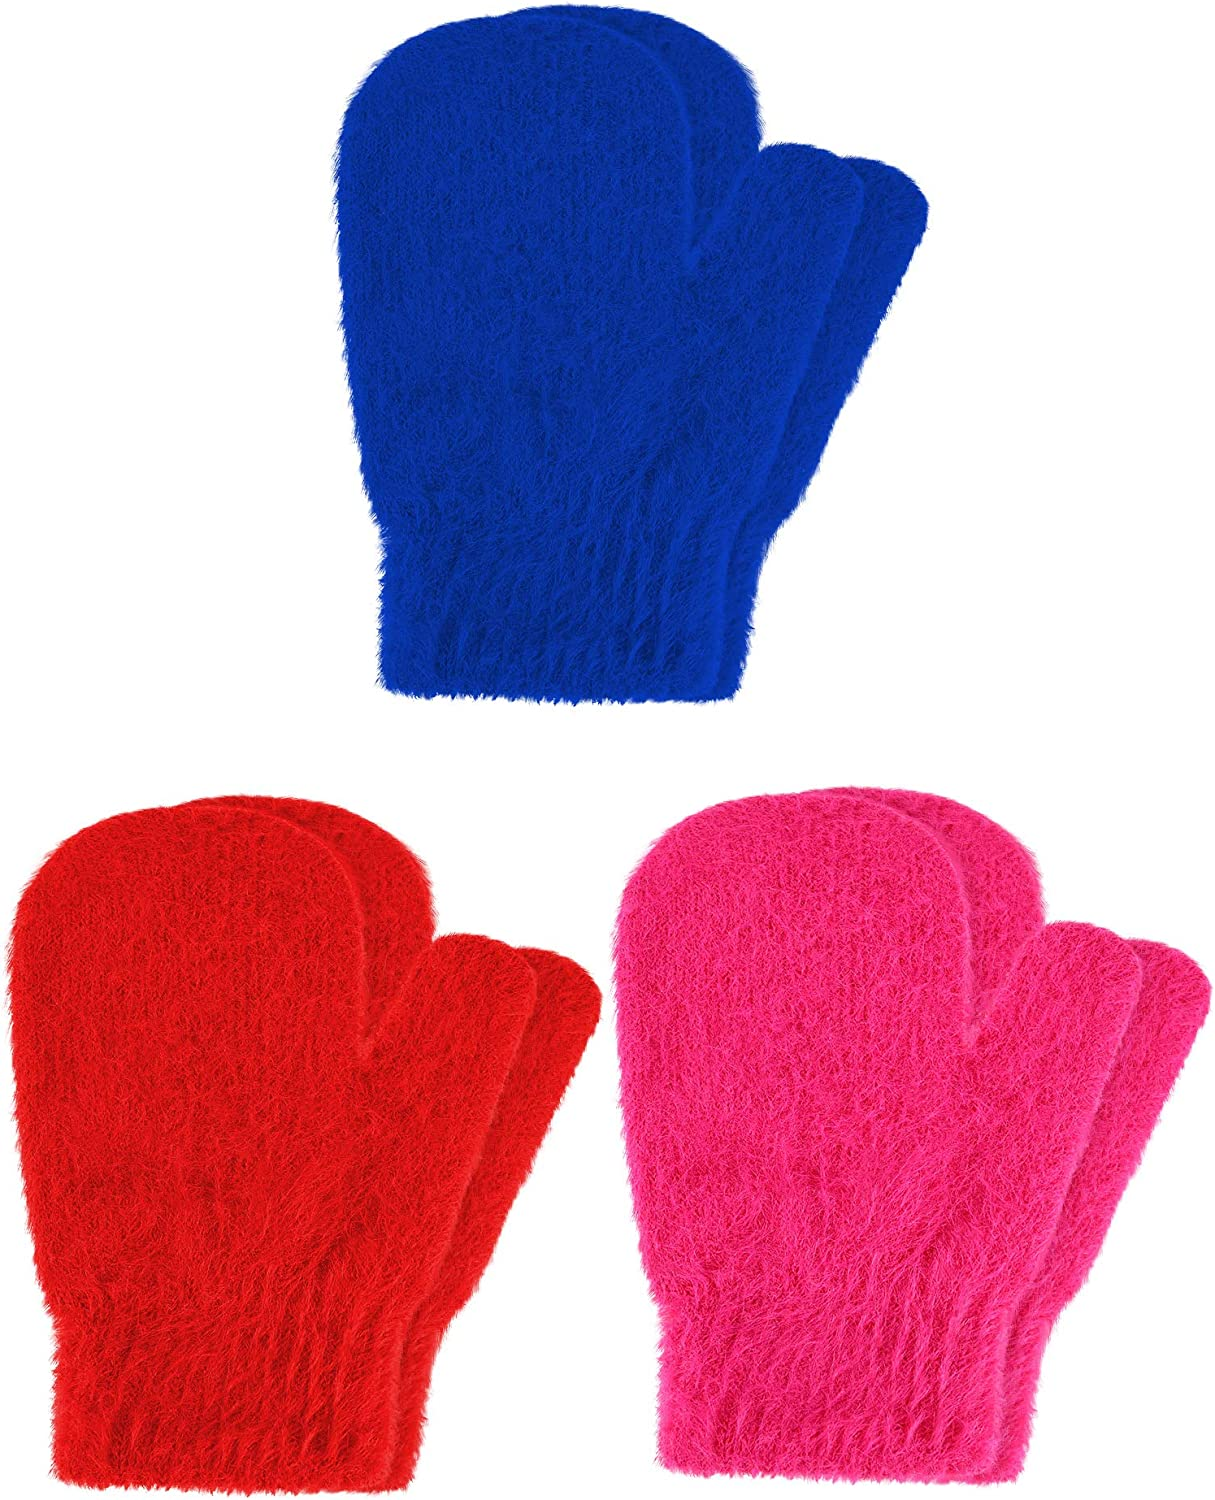 3 Pairs Toddler Stretchy Mittens Soft Knitted Mitten Winter Knitted Gloves for Boys Girls, 1-5 Years Old